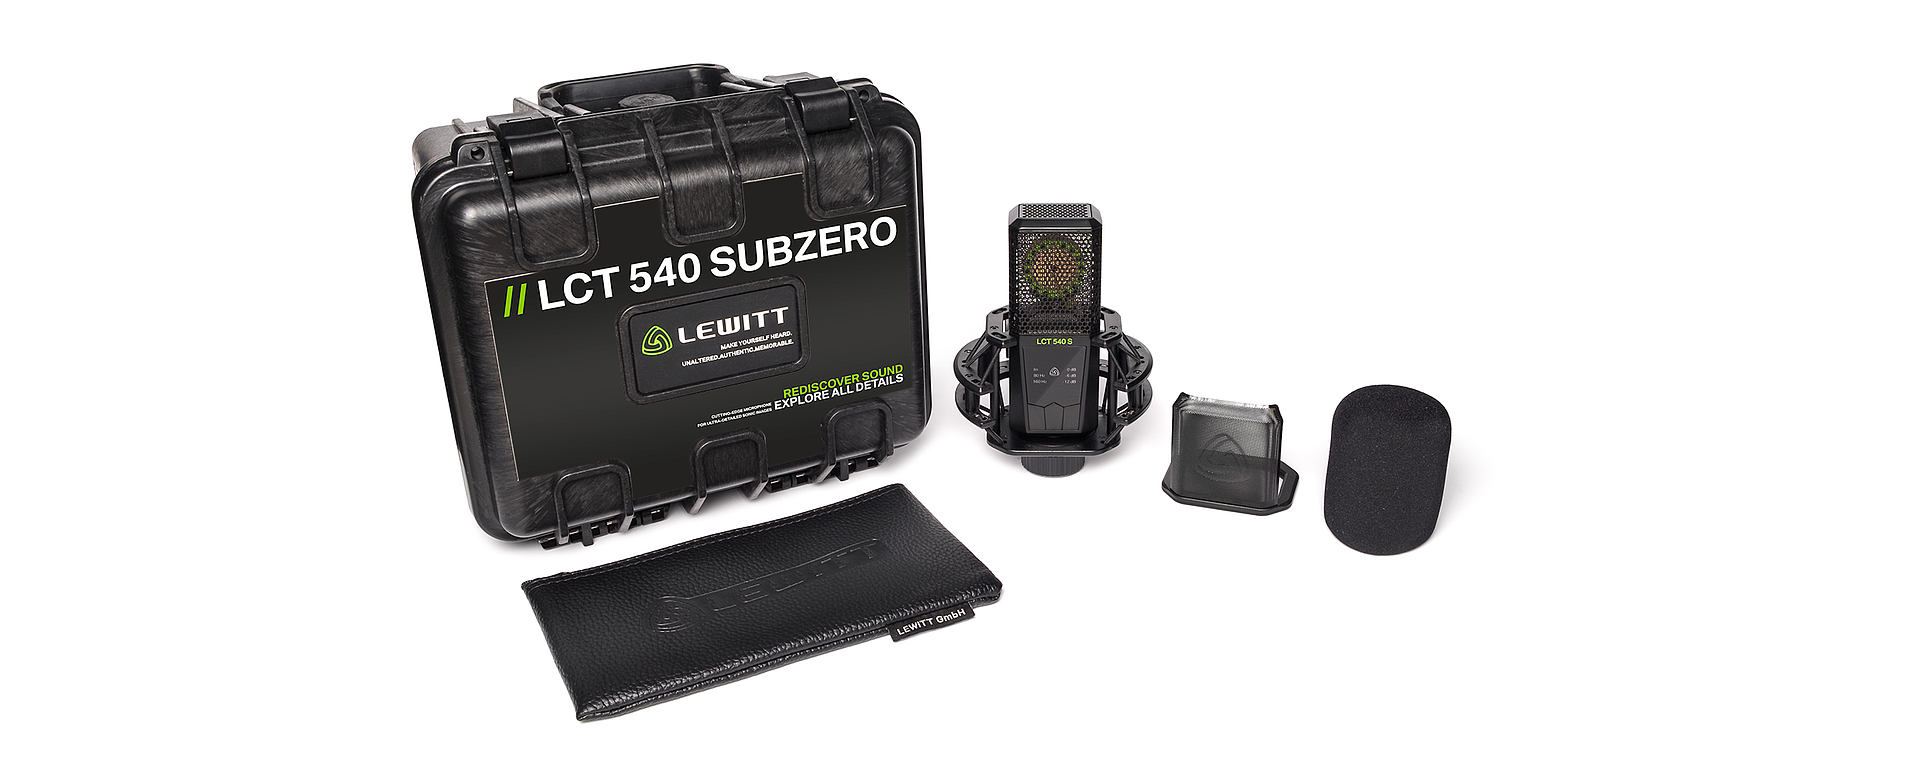 LCT 540 SUBZERO box contents